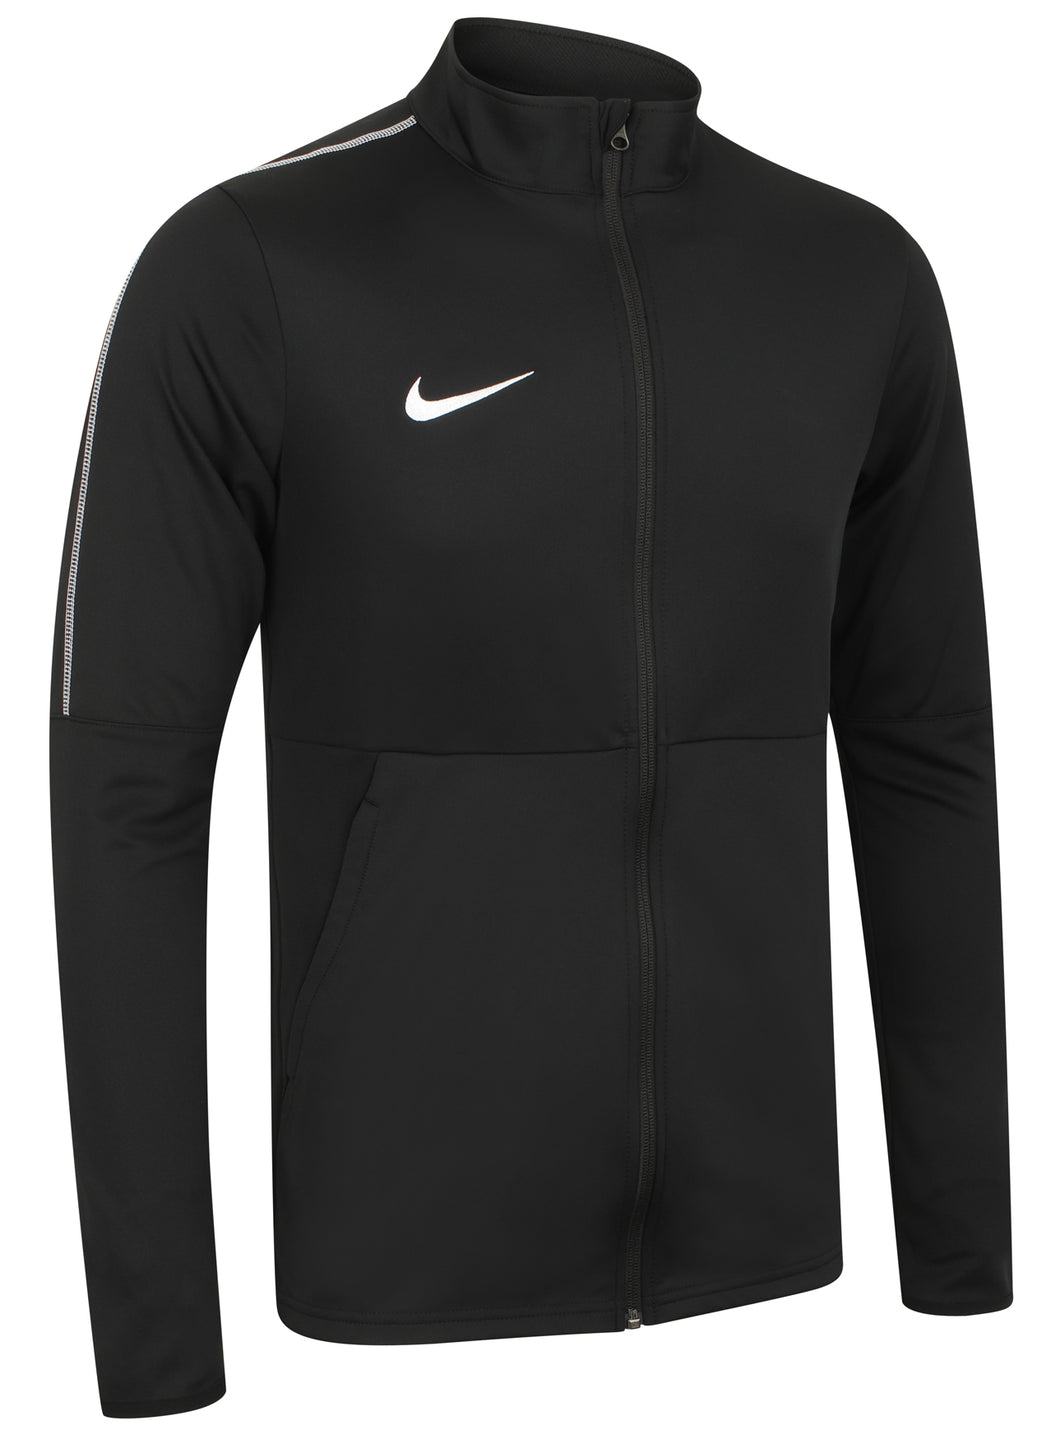 Nike Mens Dry Park 18 Dri-Fit Full Zip Track Jacket - AA2059-010 - Black Front